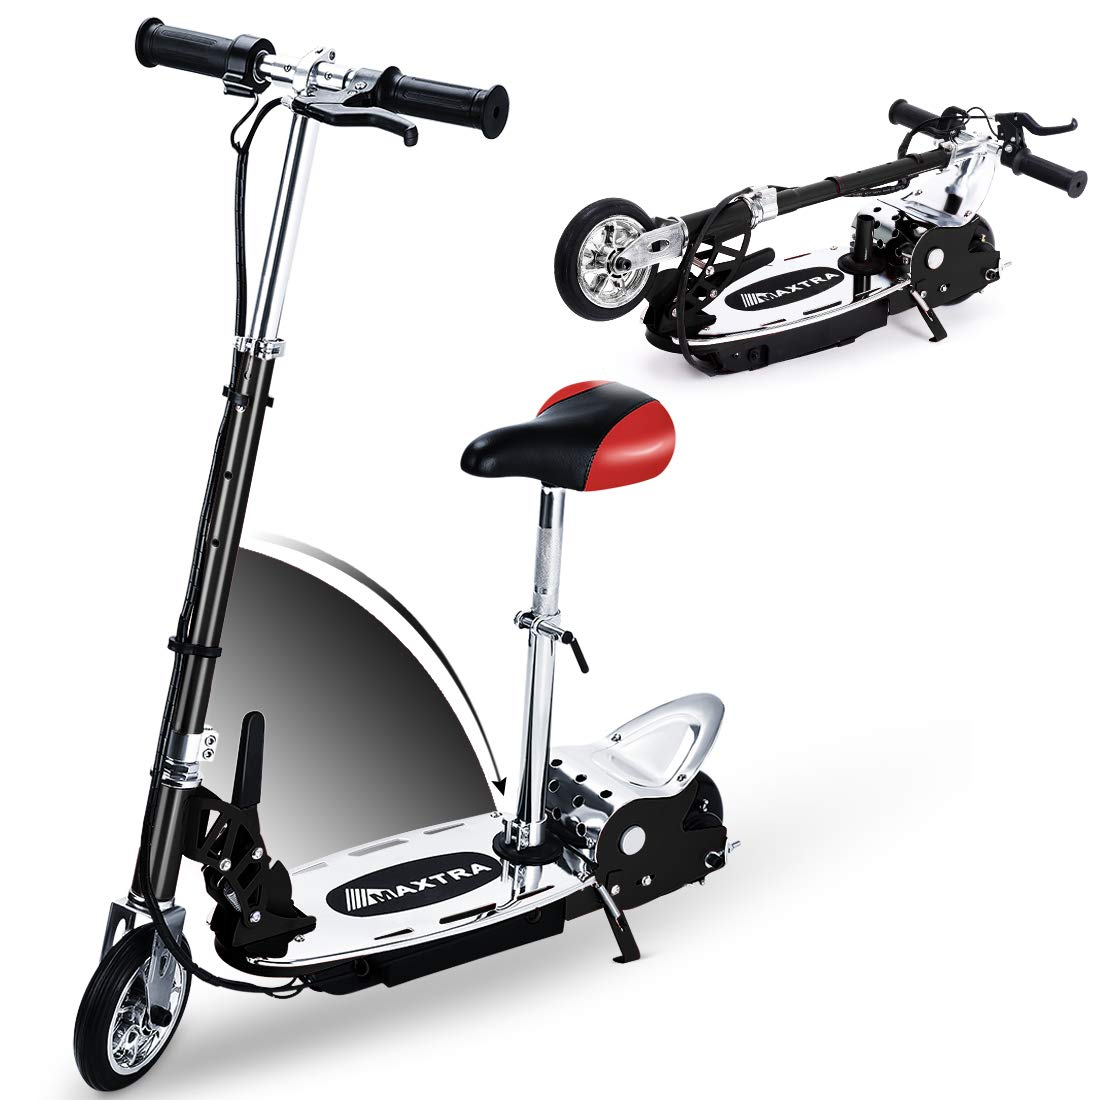 Overwhelming Upgrade E120 Adjustable Handlebar Height and Seat Folding Electric Scooter with Removable Seat for Kids,177lbs Max Weight Capacity Motorized Bike, up to 10 mph - Black by Overwhelming